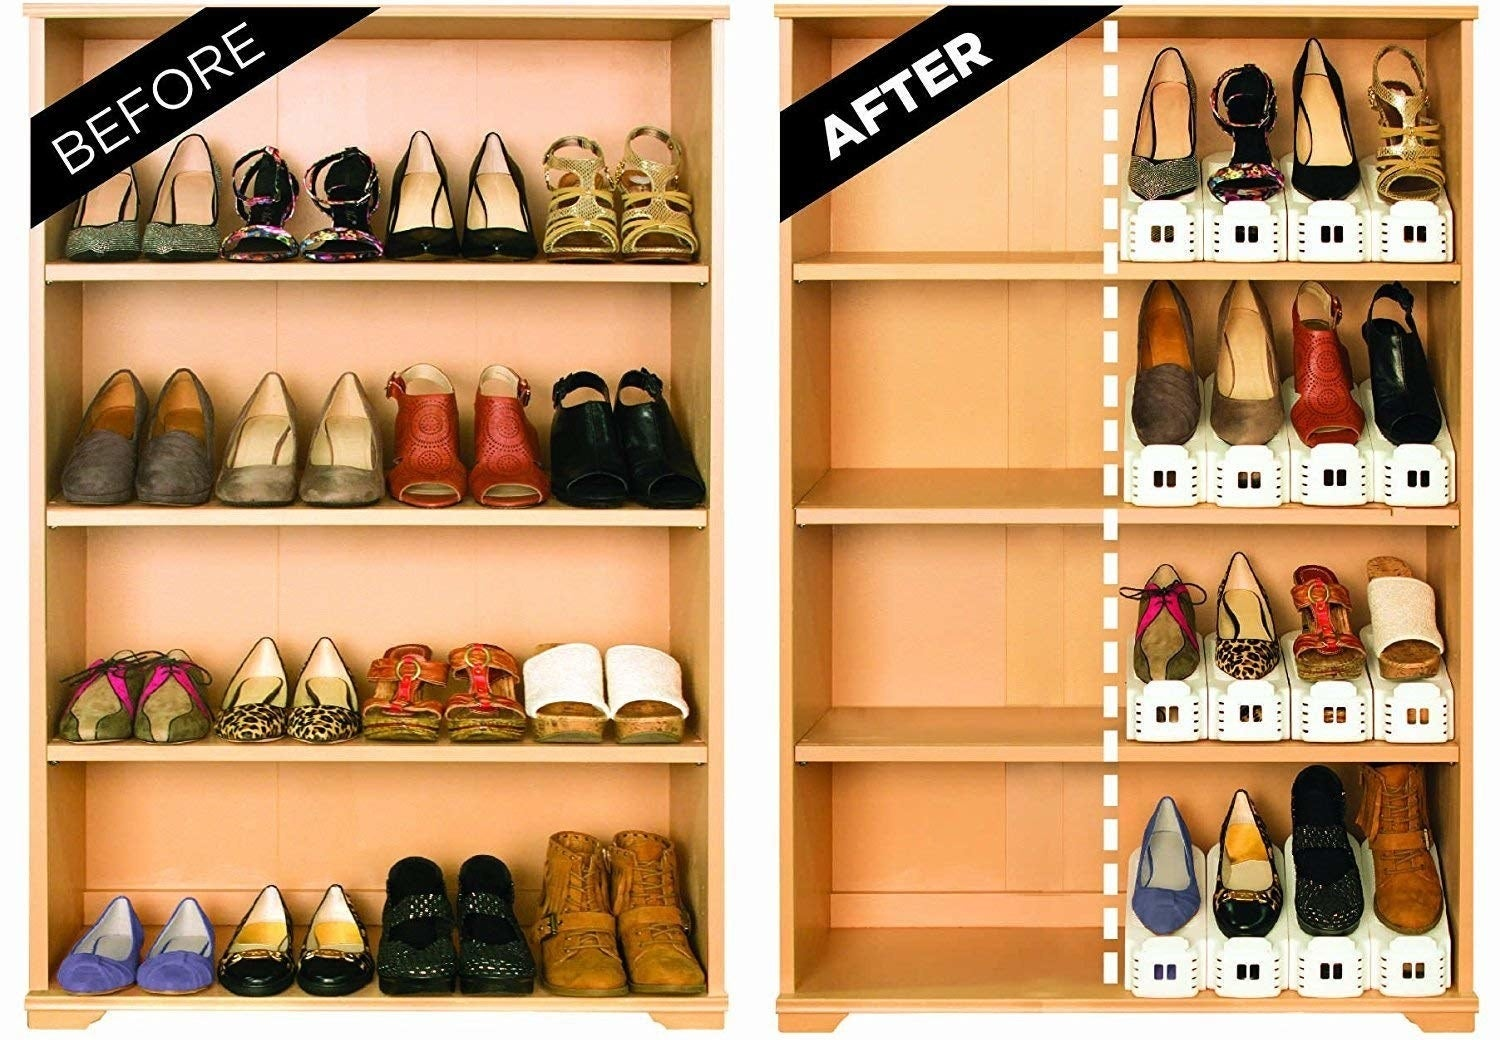 Before-and-after image of the shoes stored regularly versus on the holders, which cuts the space used in half